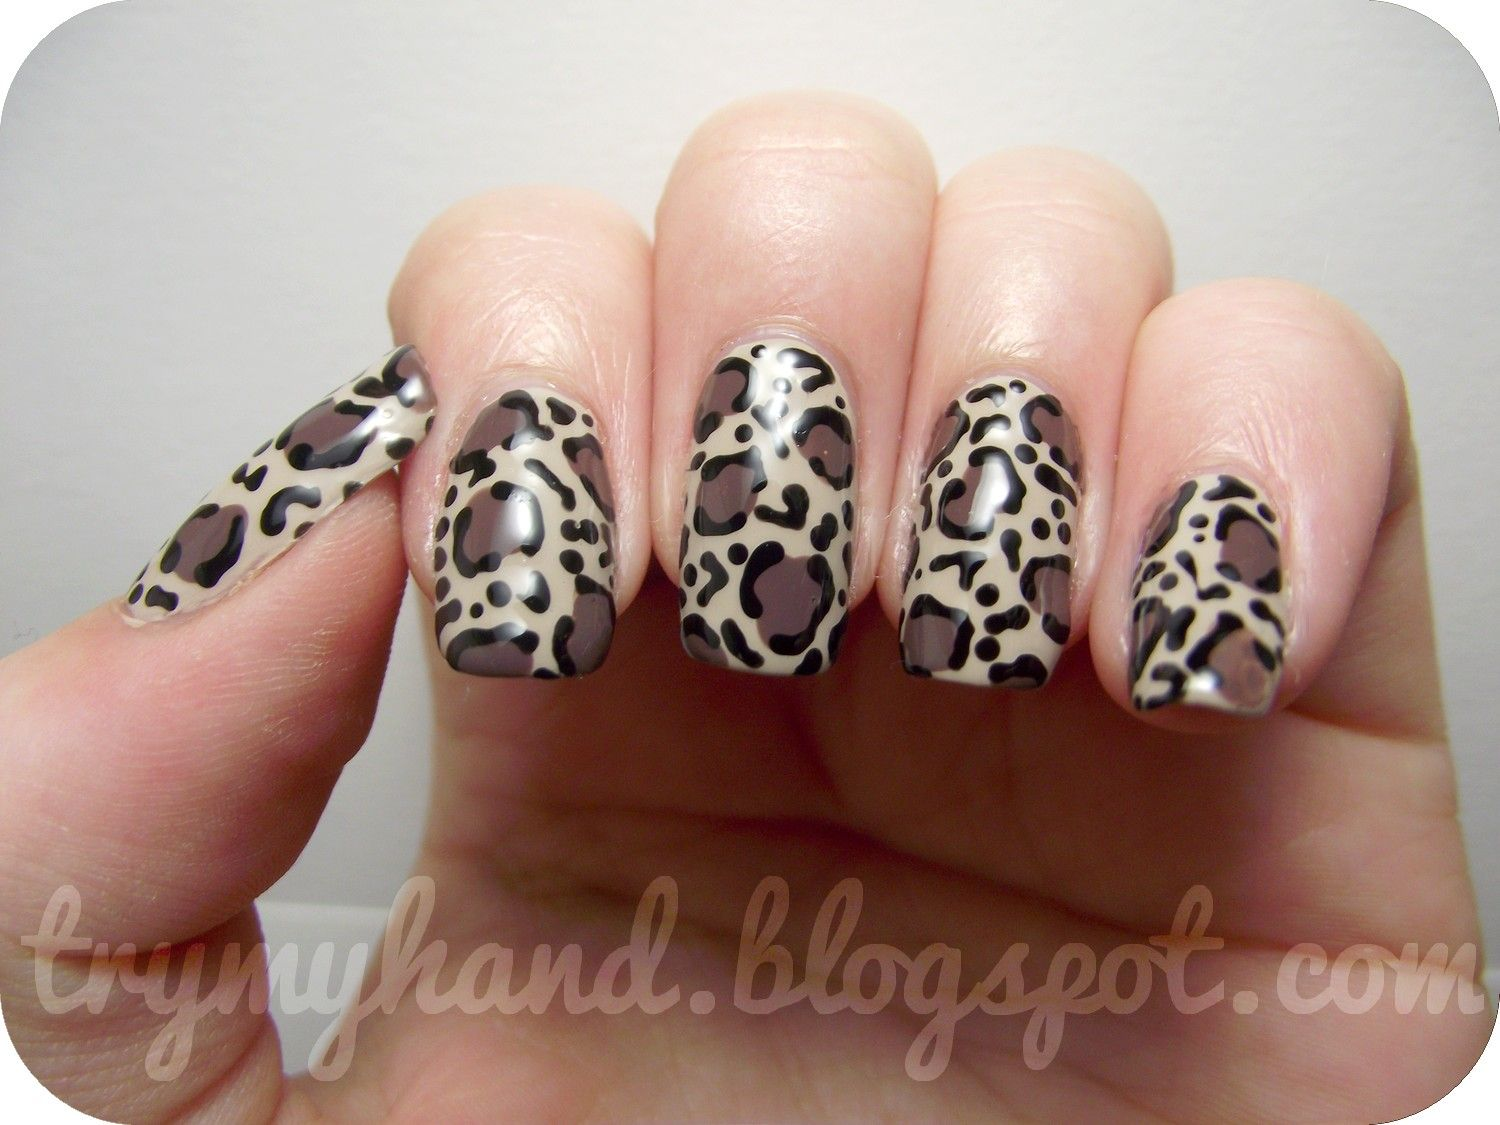 Awesome Leopard Print Nail Art Design Idea With Decals Applied On ...